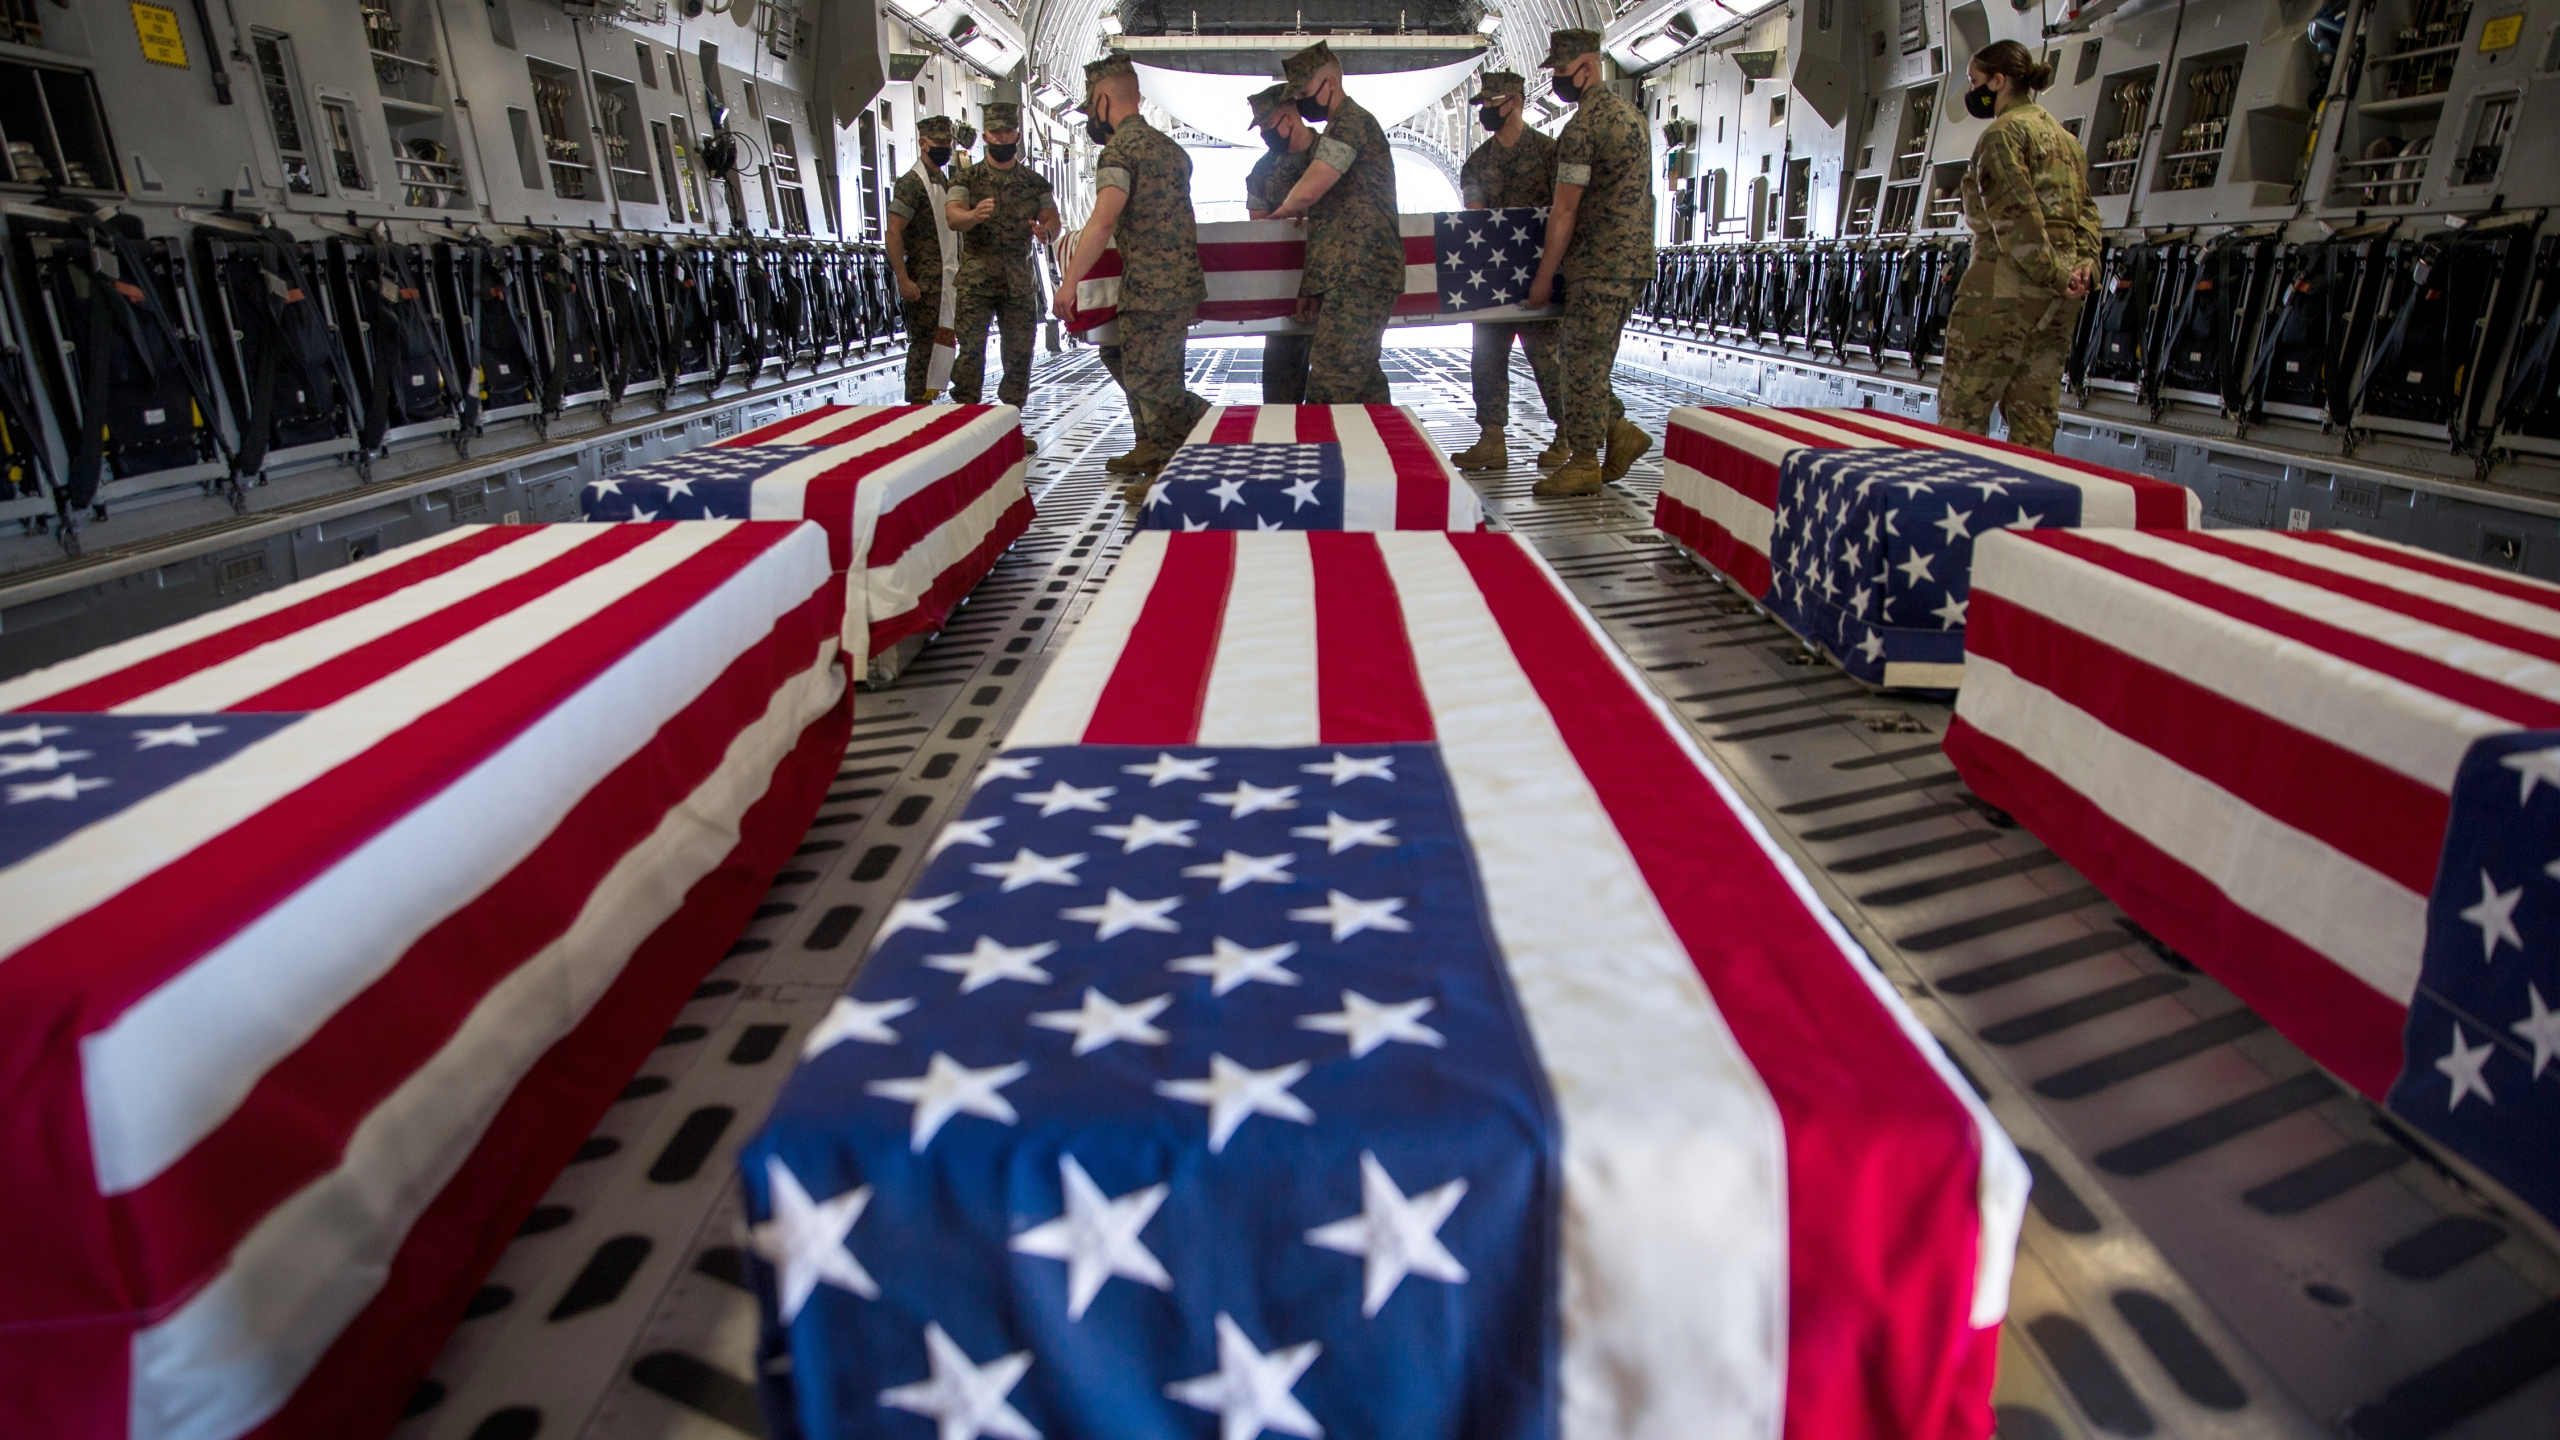 In this photo provided by the U.S. Marine Corps, U.S. Marines and sailors carry a casket inside a U.S. Air Force C-17 Globemaster III at Marine Corps Air Station Miramar, in Calif., Wednesday, Aug. 12, 2020. (Lance Cpl. Brendan Mullin/U.S. Marine Corps via AP)